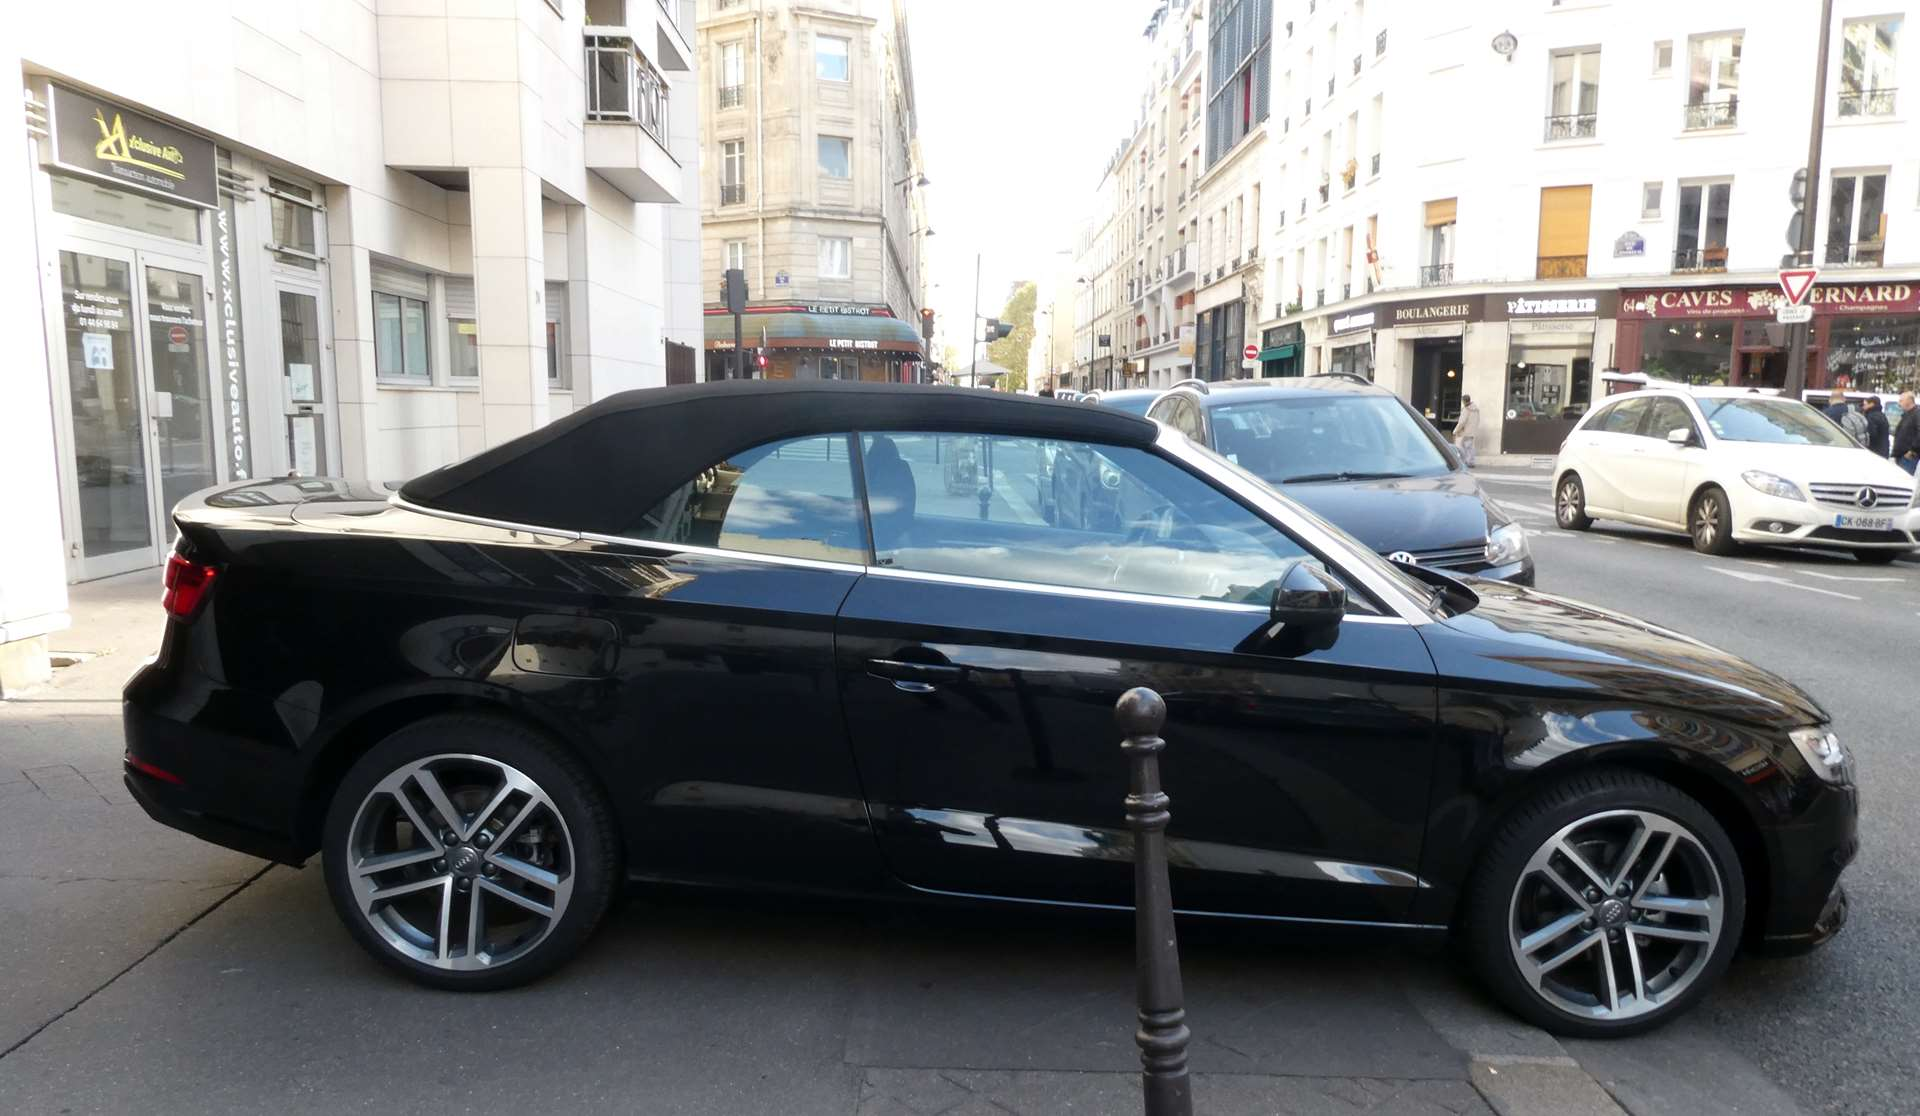 Audi A3 (2) cabriolet 35 TFSI 150 Design luxe S tronic 7 1